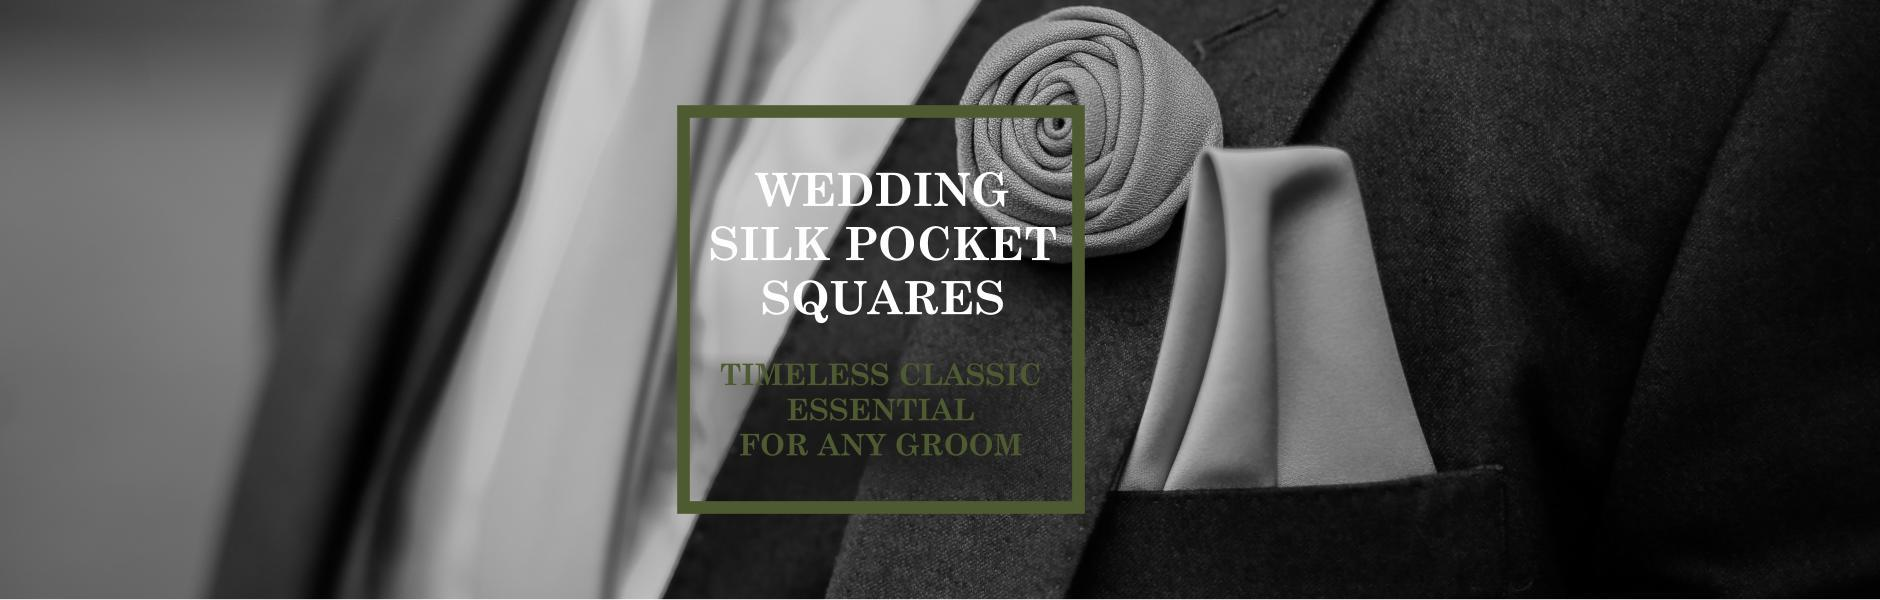 Wedding Silk Pocket Squares - British Made